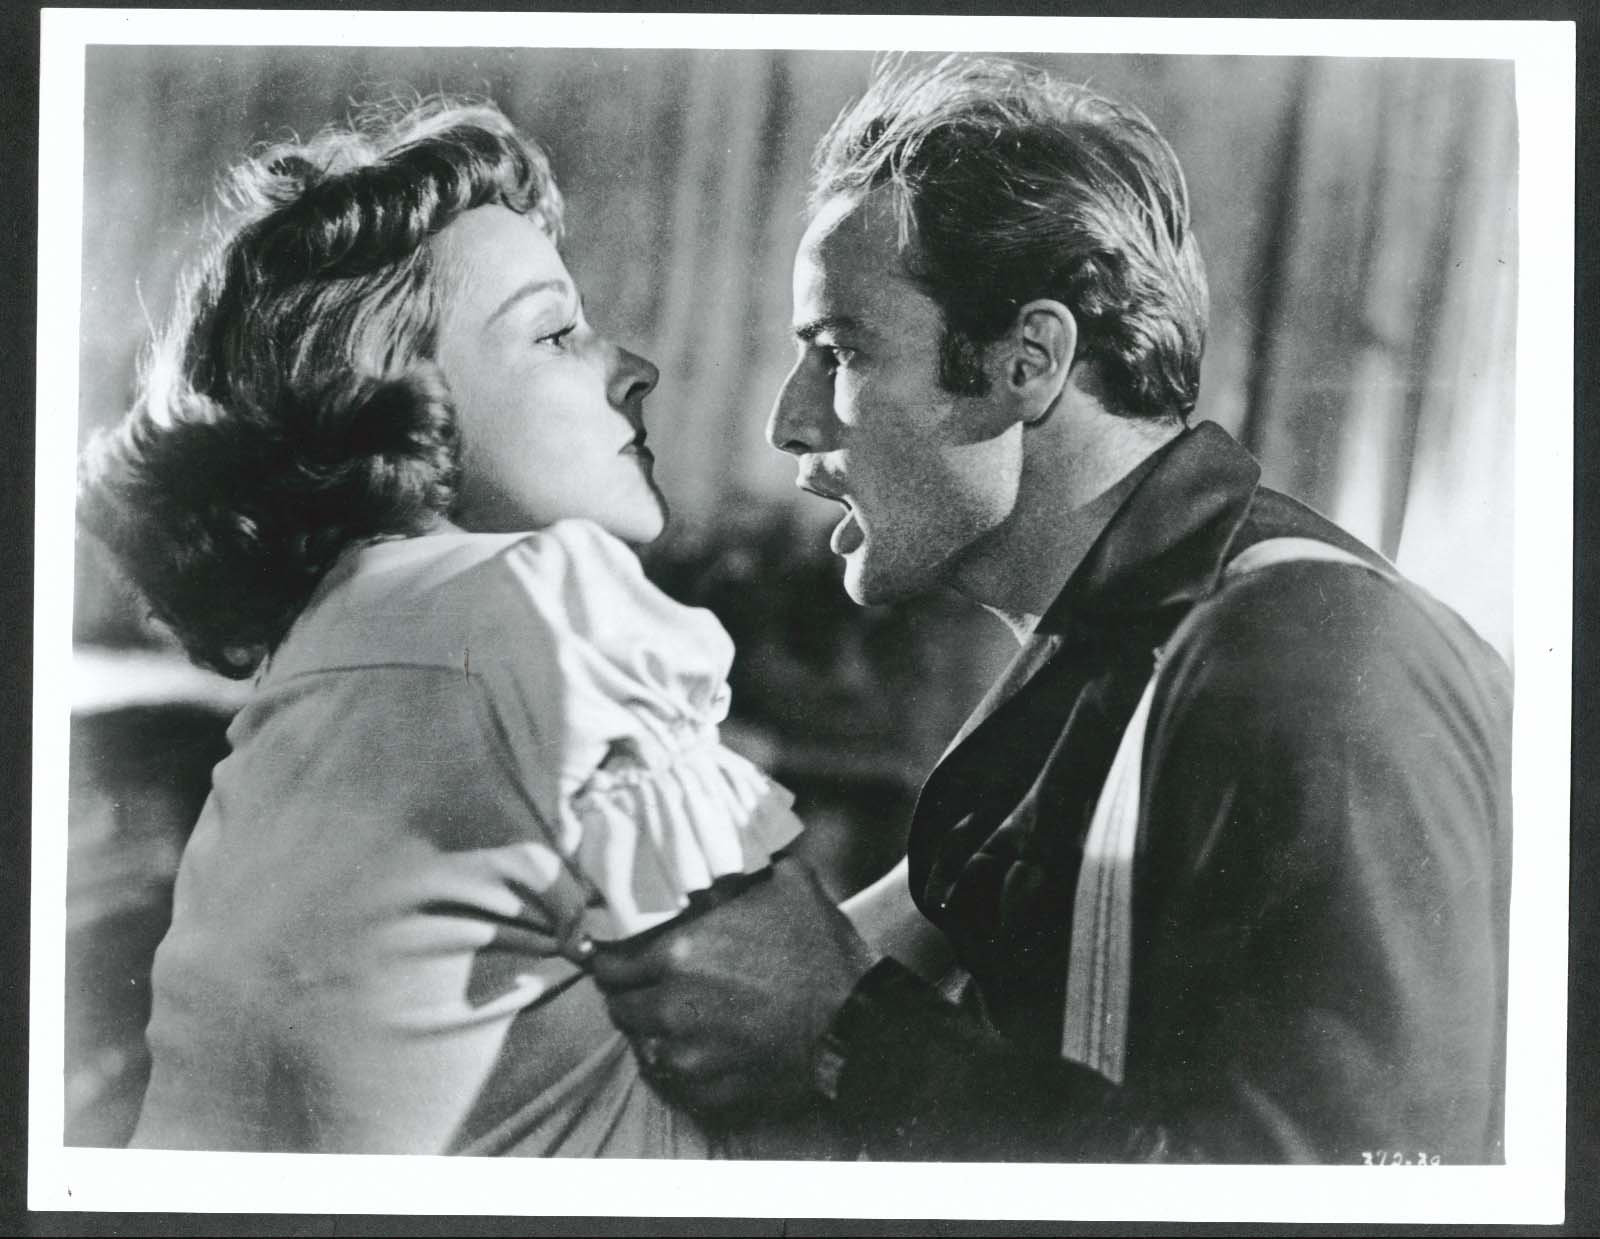 Image for Vivien Leigh Marlon Brando Streetcar Named Desire 8x10 photo restrike #2